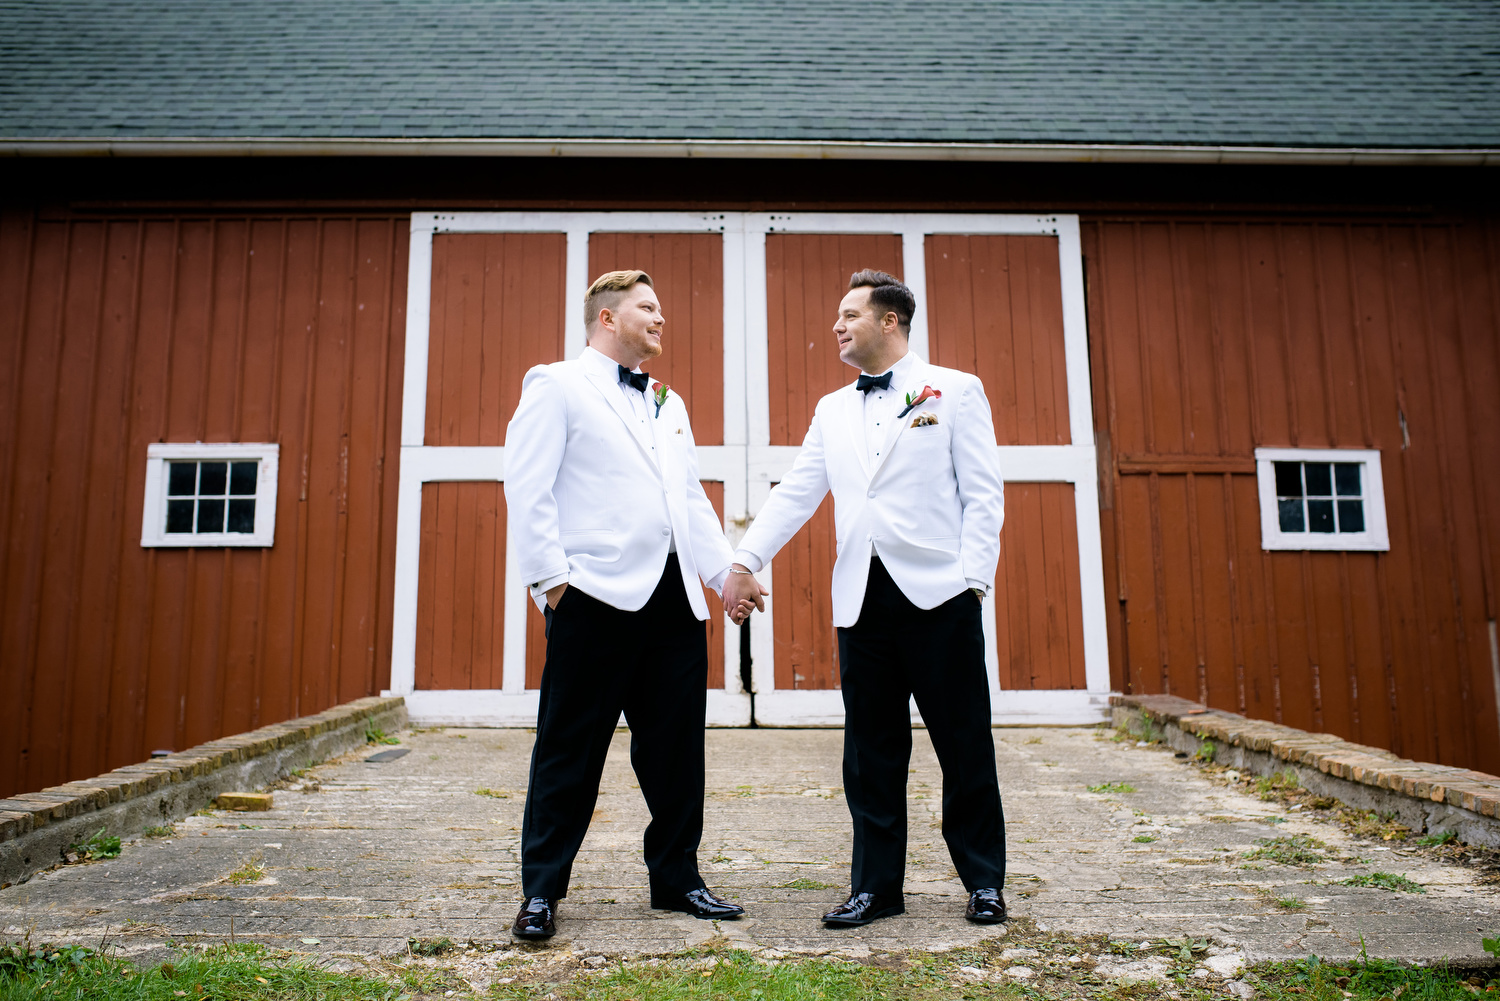 Wedding portrait of the grooms during a same sex wedding at Heritage Prairie Farm.